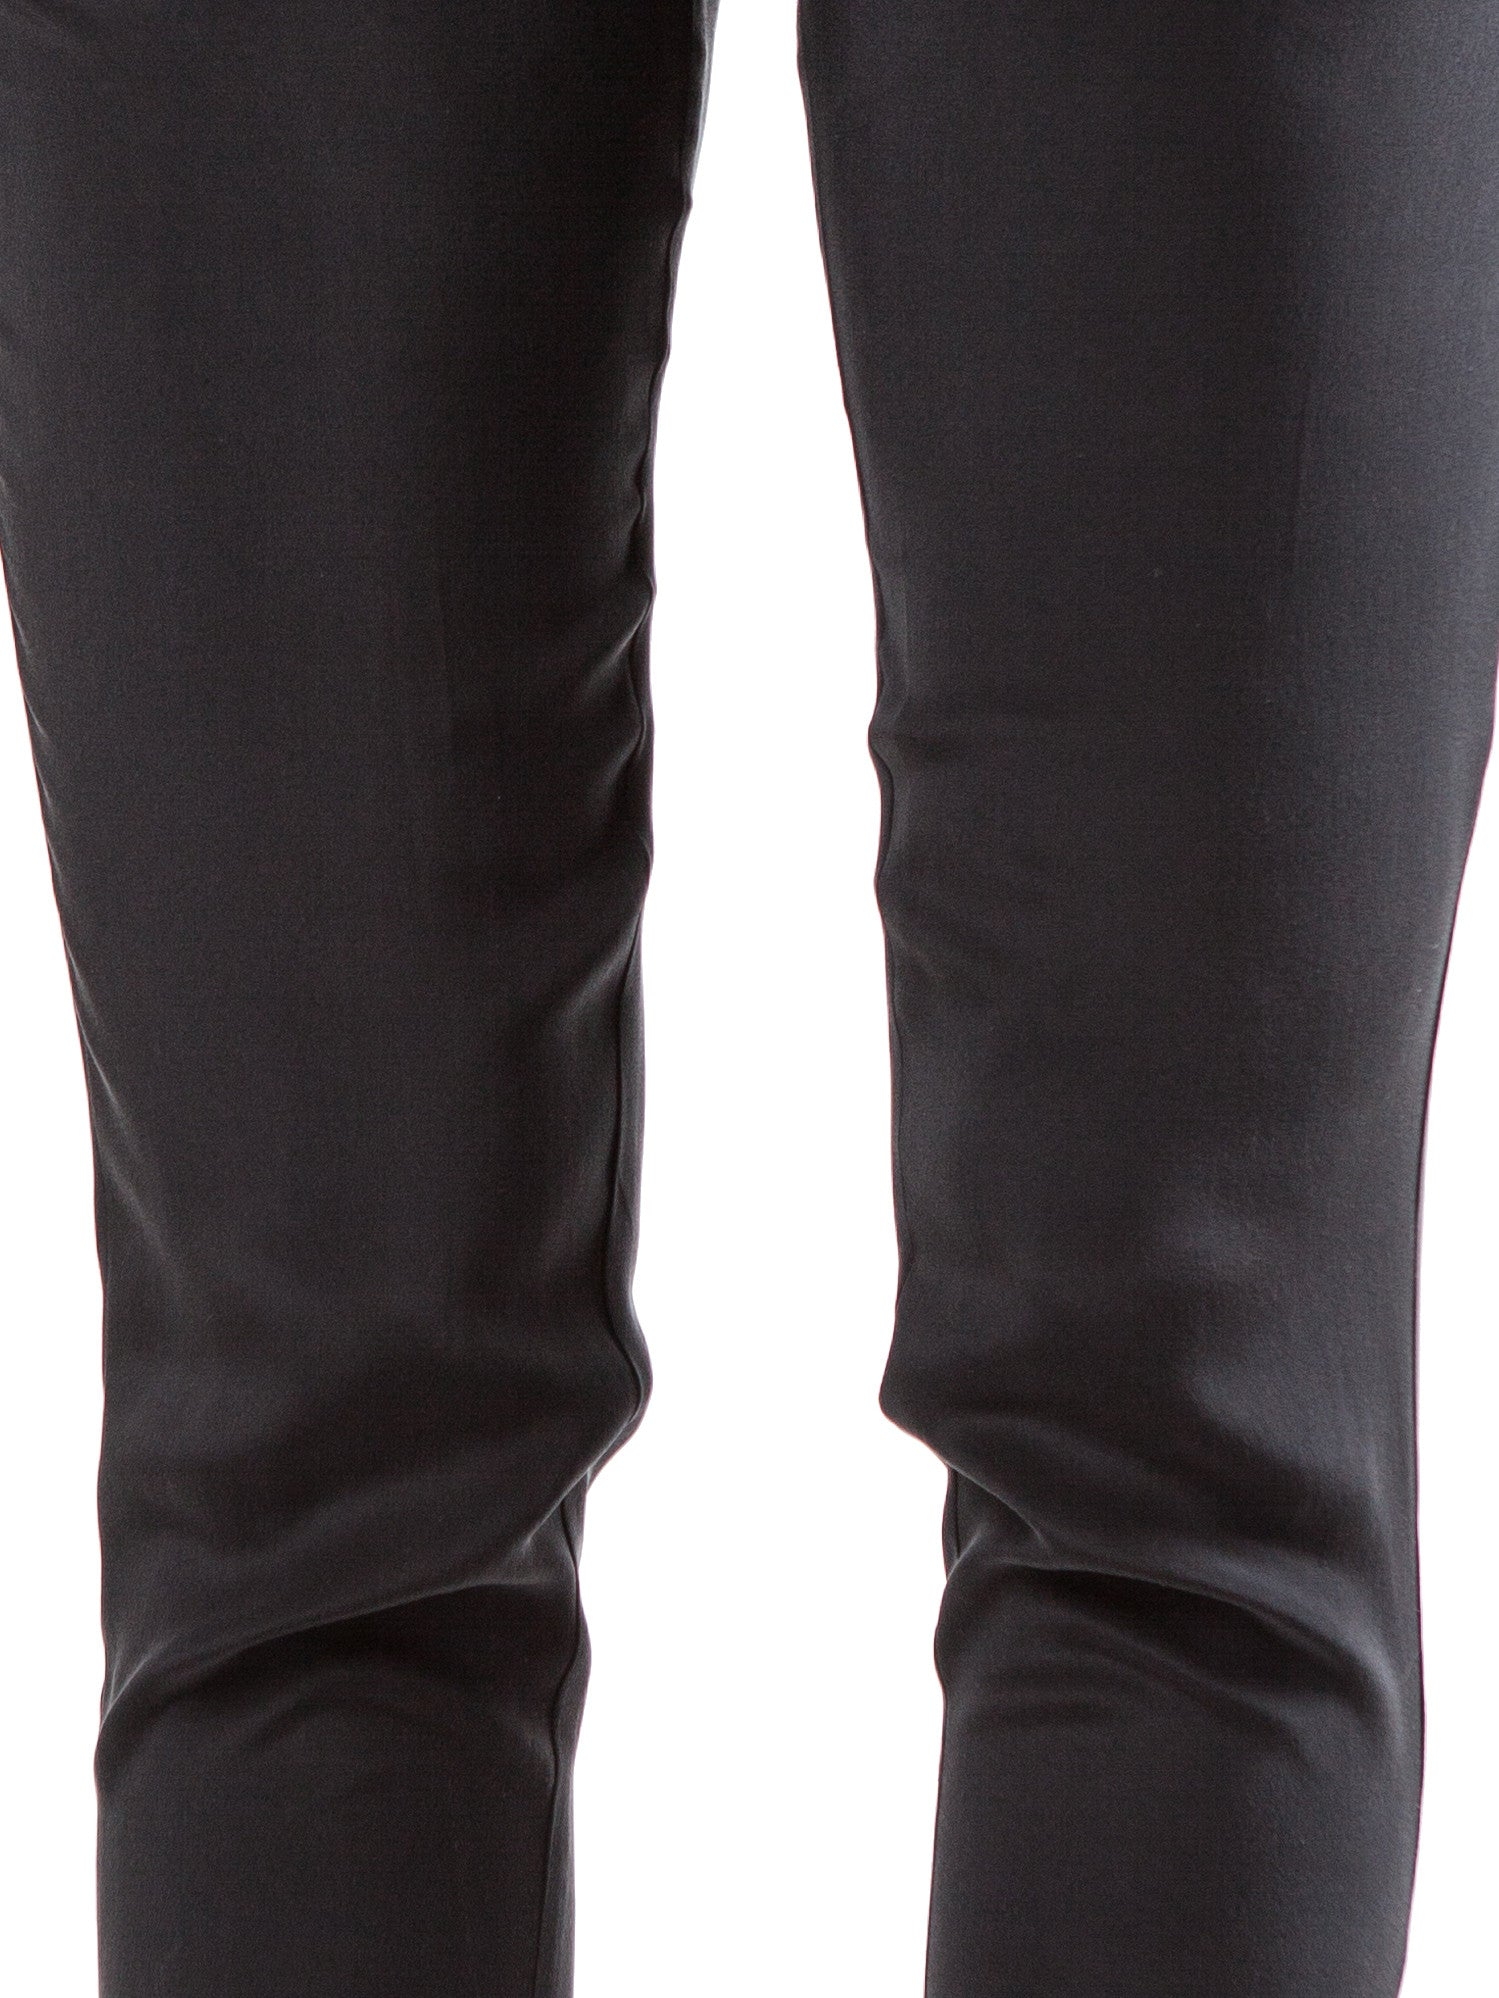 <b>Black elastic waist pants</b><br><i>Silk Crepe de Chine</i>